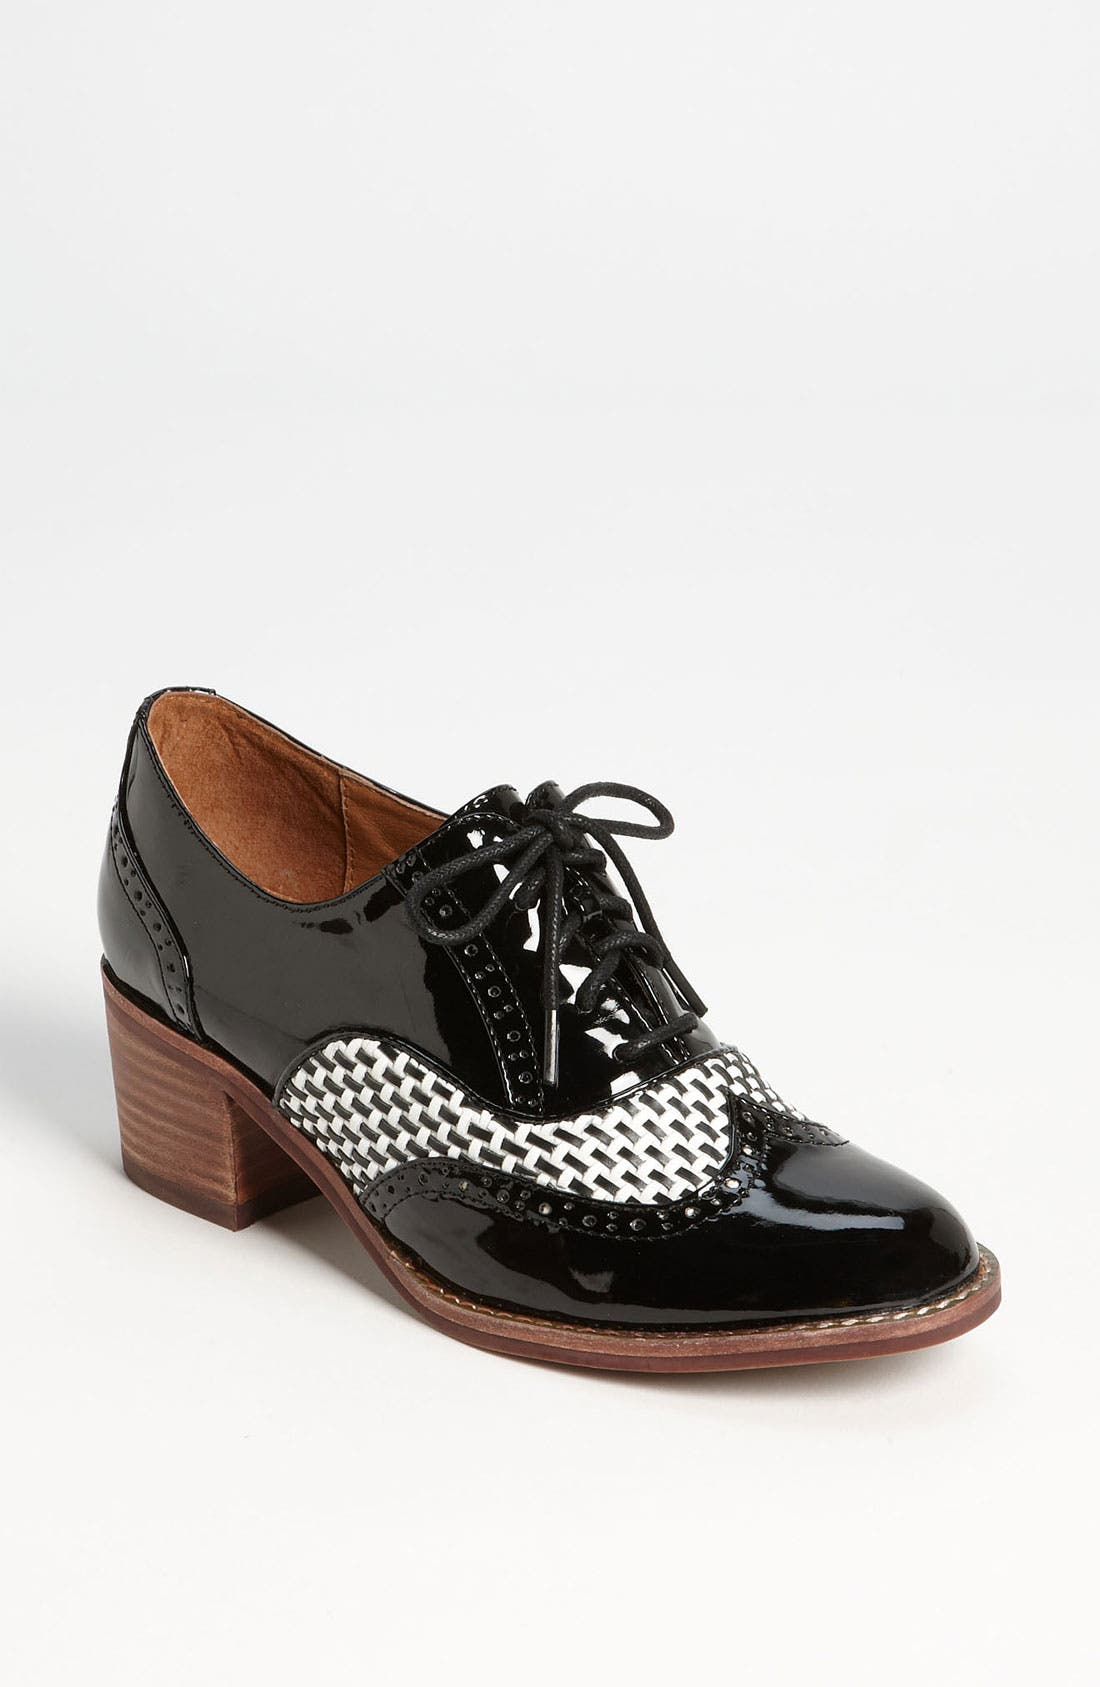 Alternate Image 1 Selected - Jeffrey Campbell 'William' Woven Oxford